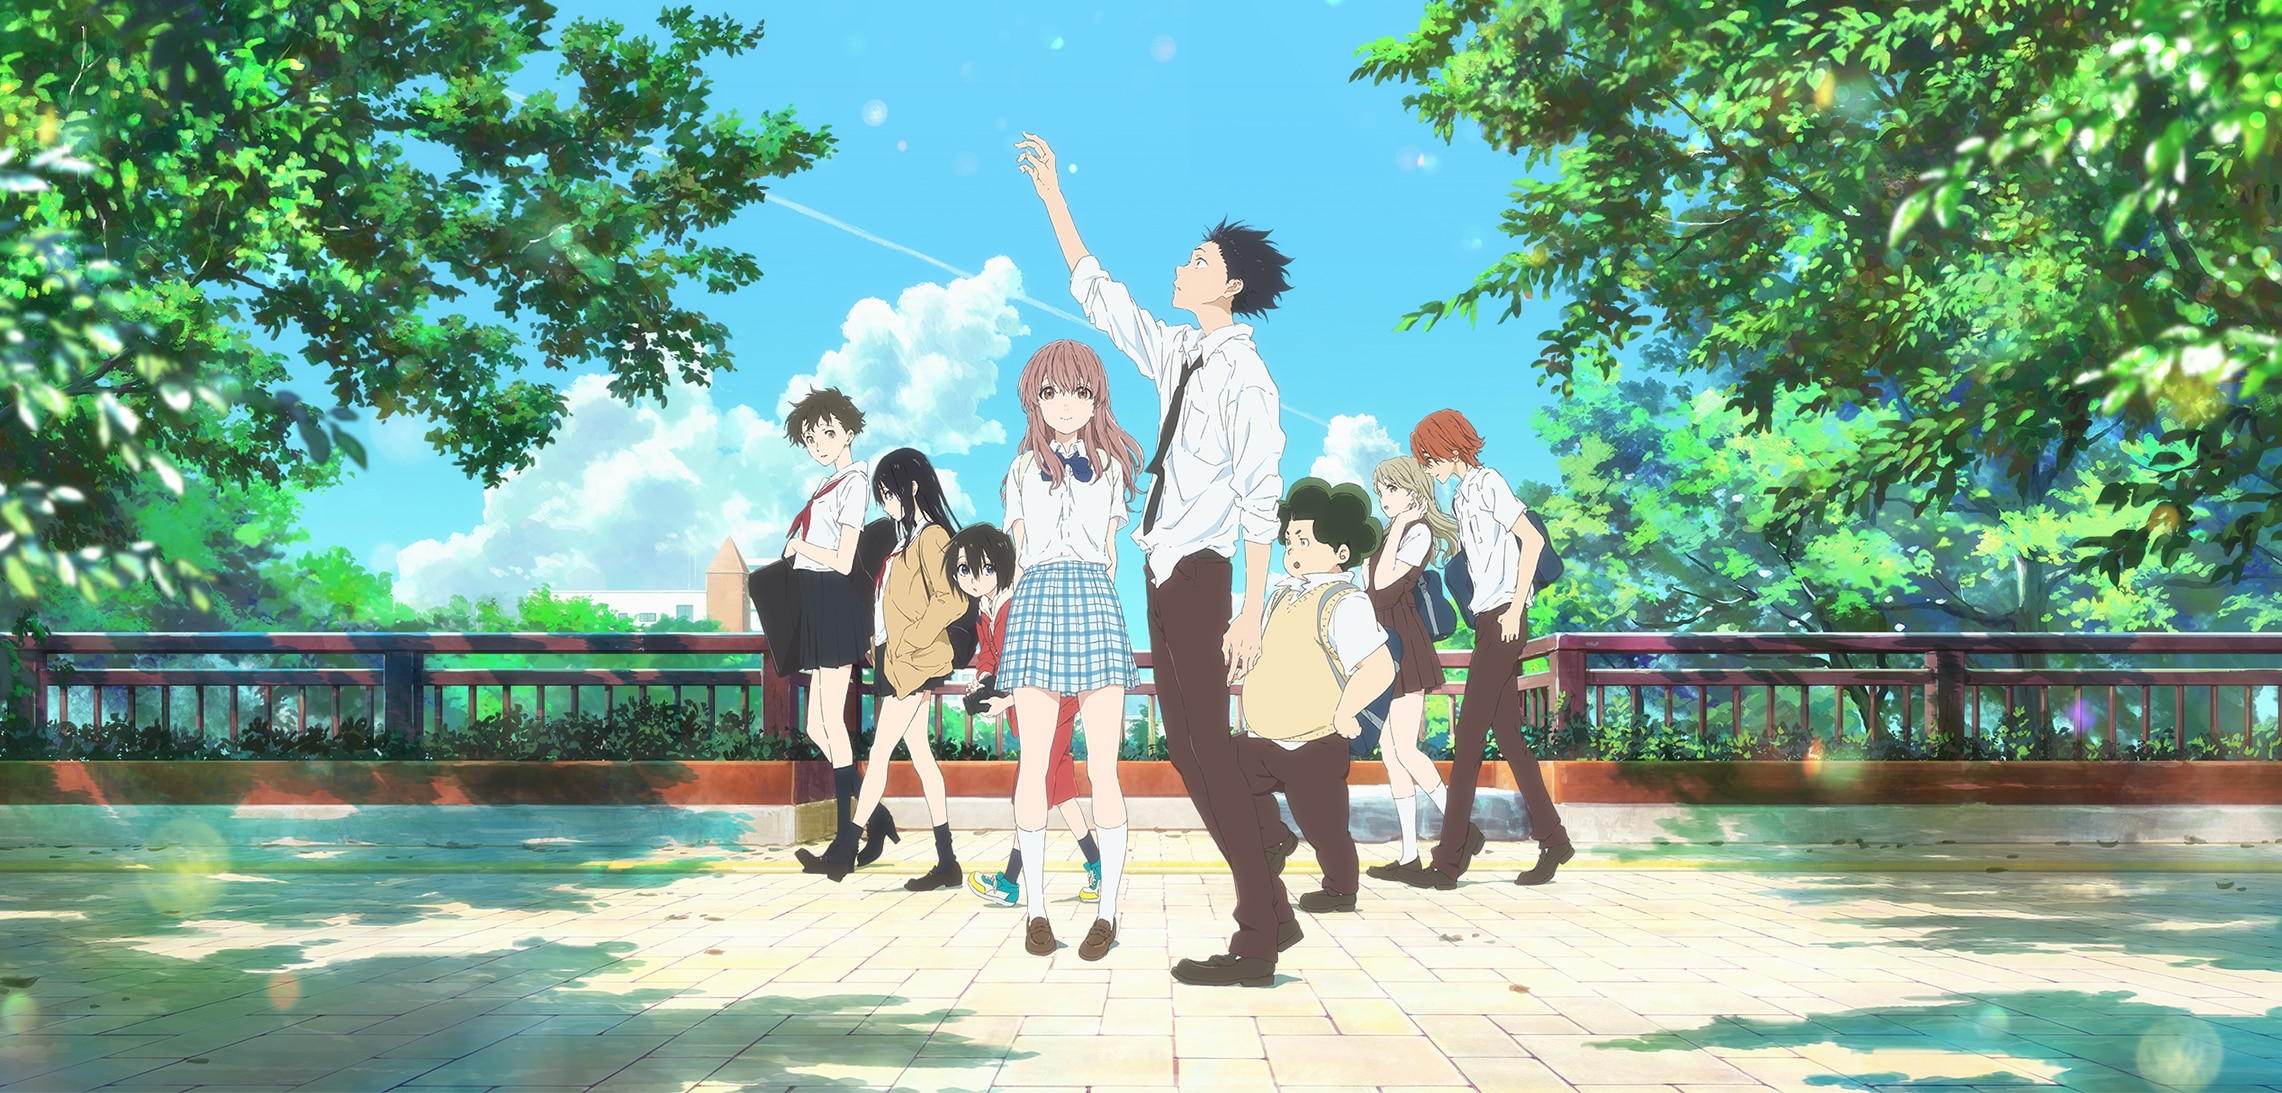 Silent voice visual 2